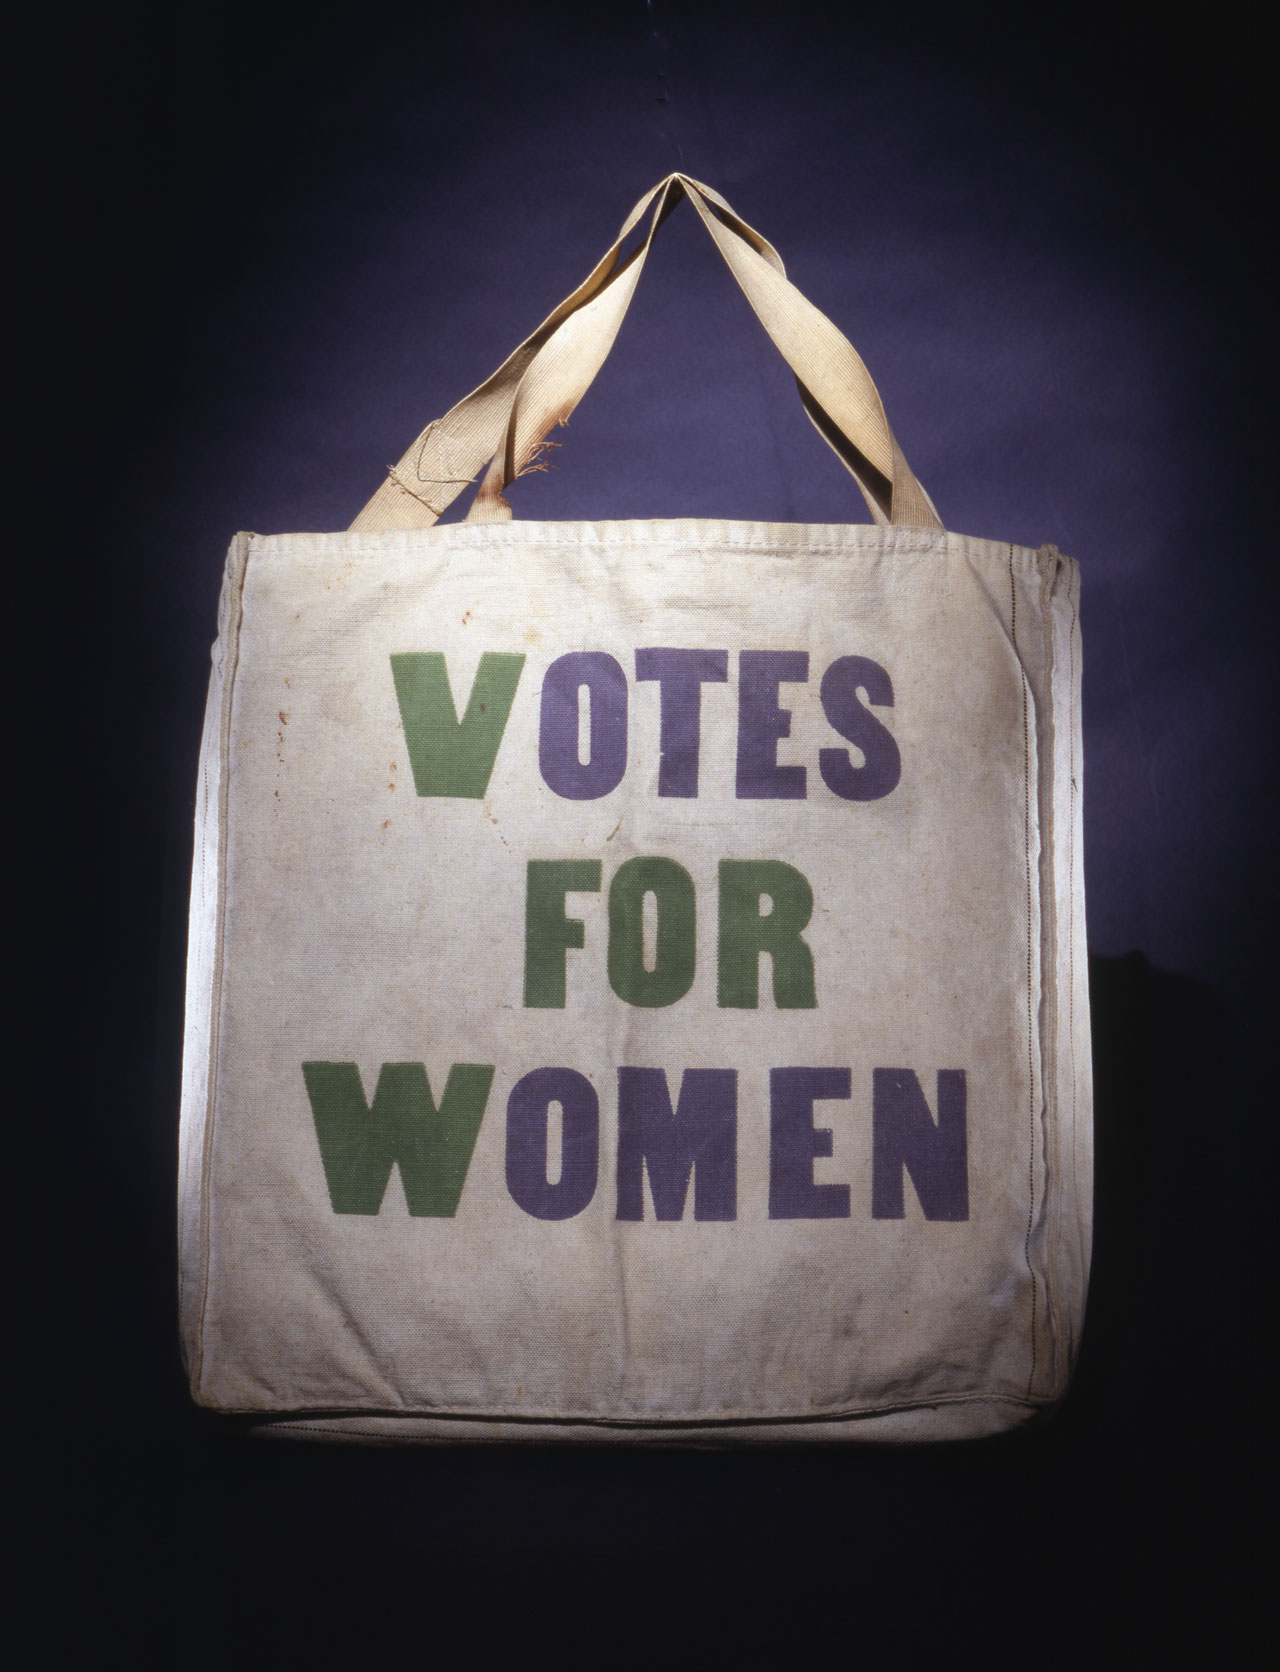 Artifact Walls - The National Woman Suffrage Parade  1913New Roles For Women Artifacts